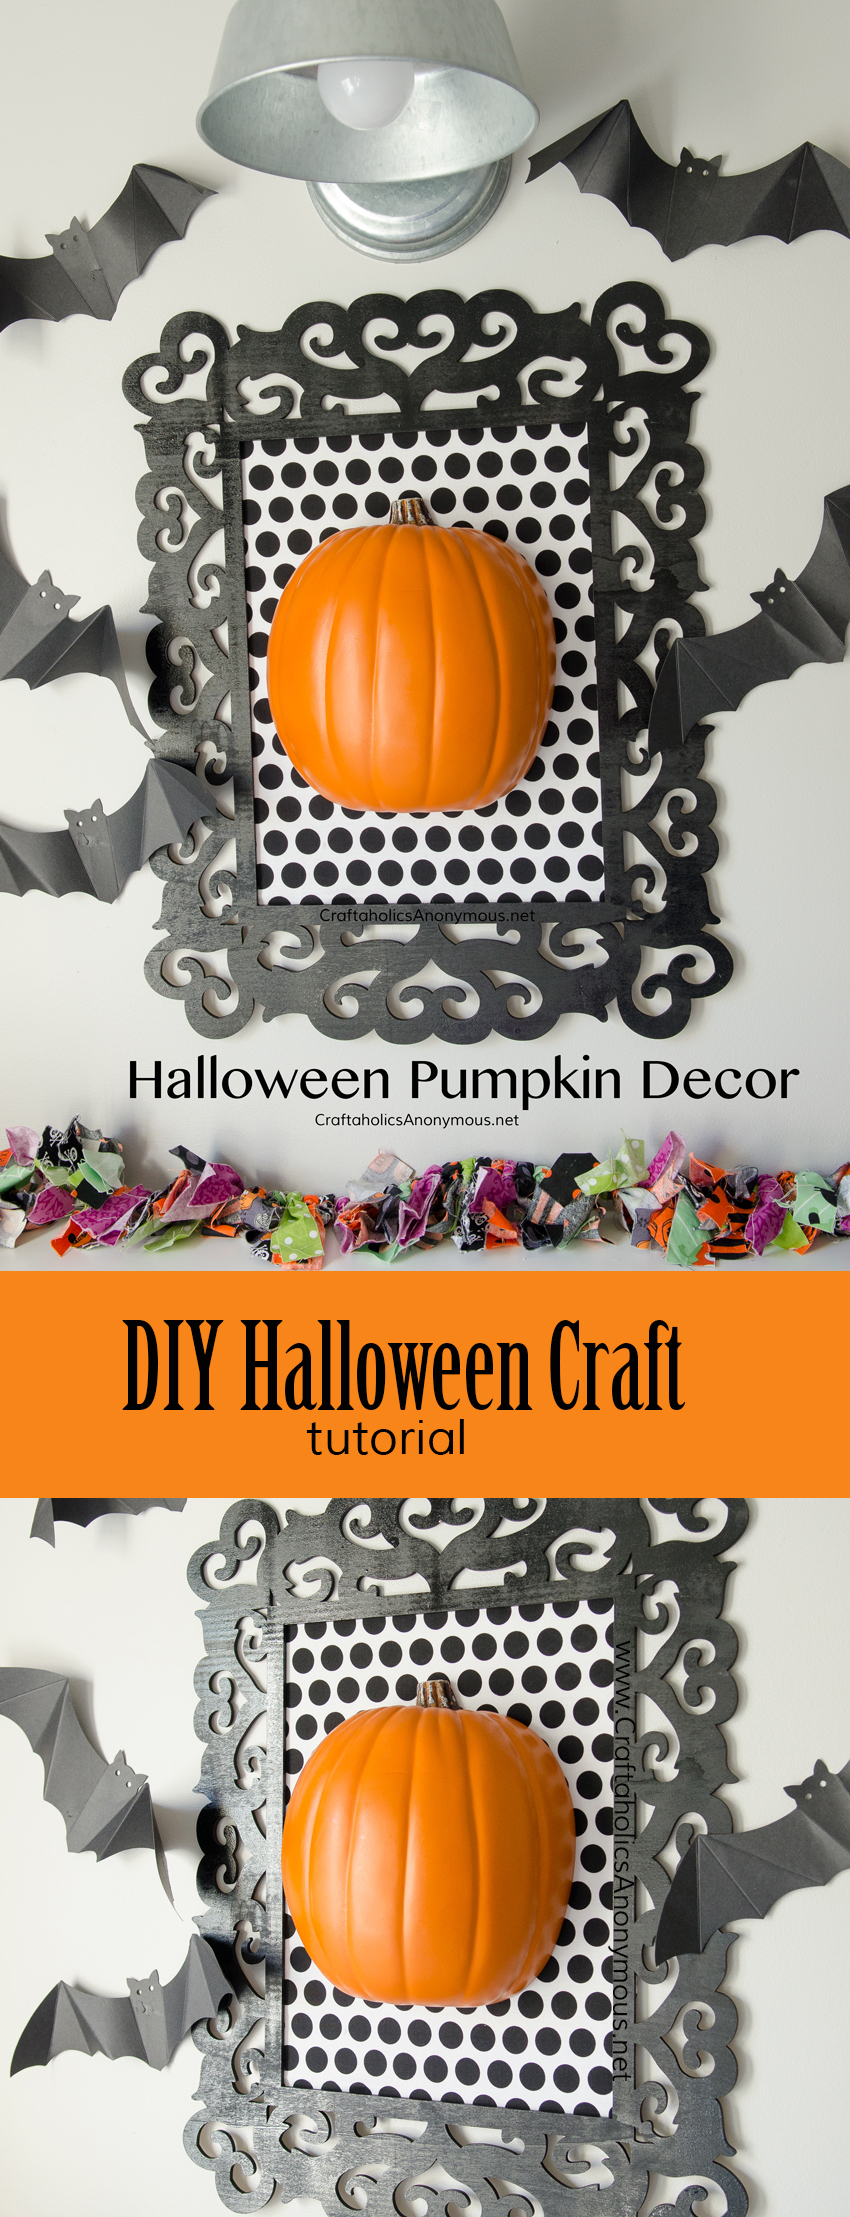 DIY Framed Halloween Pumpkin Decor craft idea || Could use a black and white damask fabric with a white pumpkin for a classic Halloween look